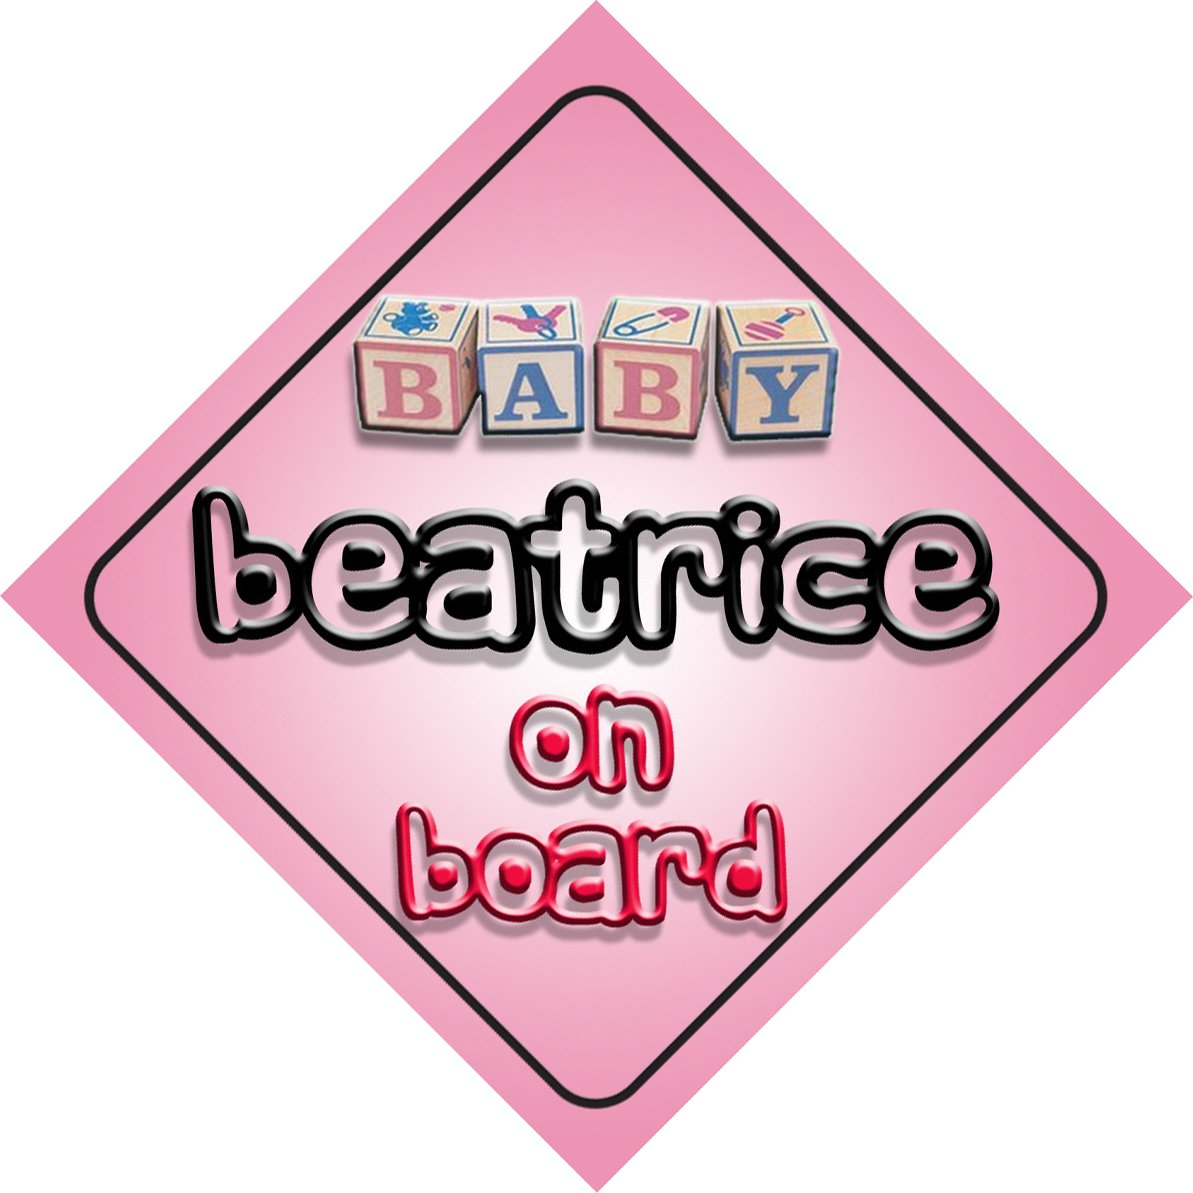 Baby Girl Beatrice on board novelty car sign gift present for new child newborn baby